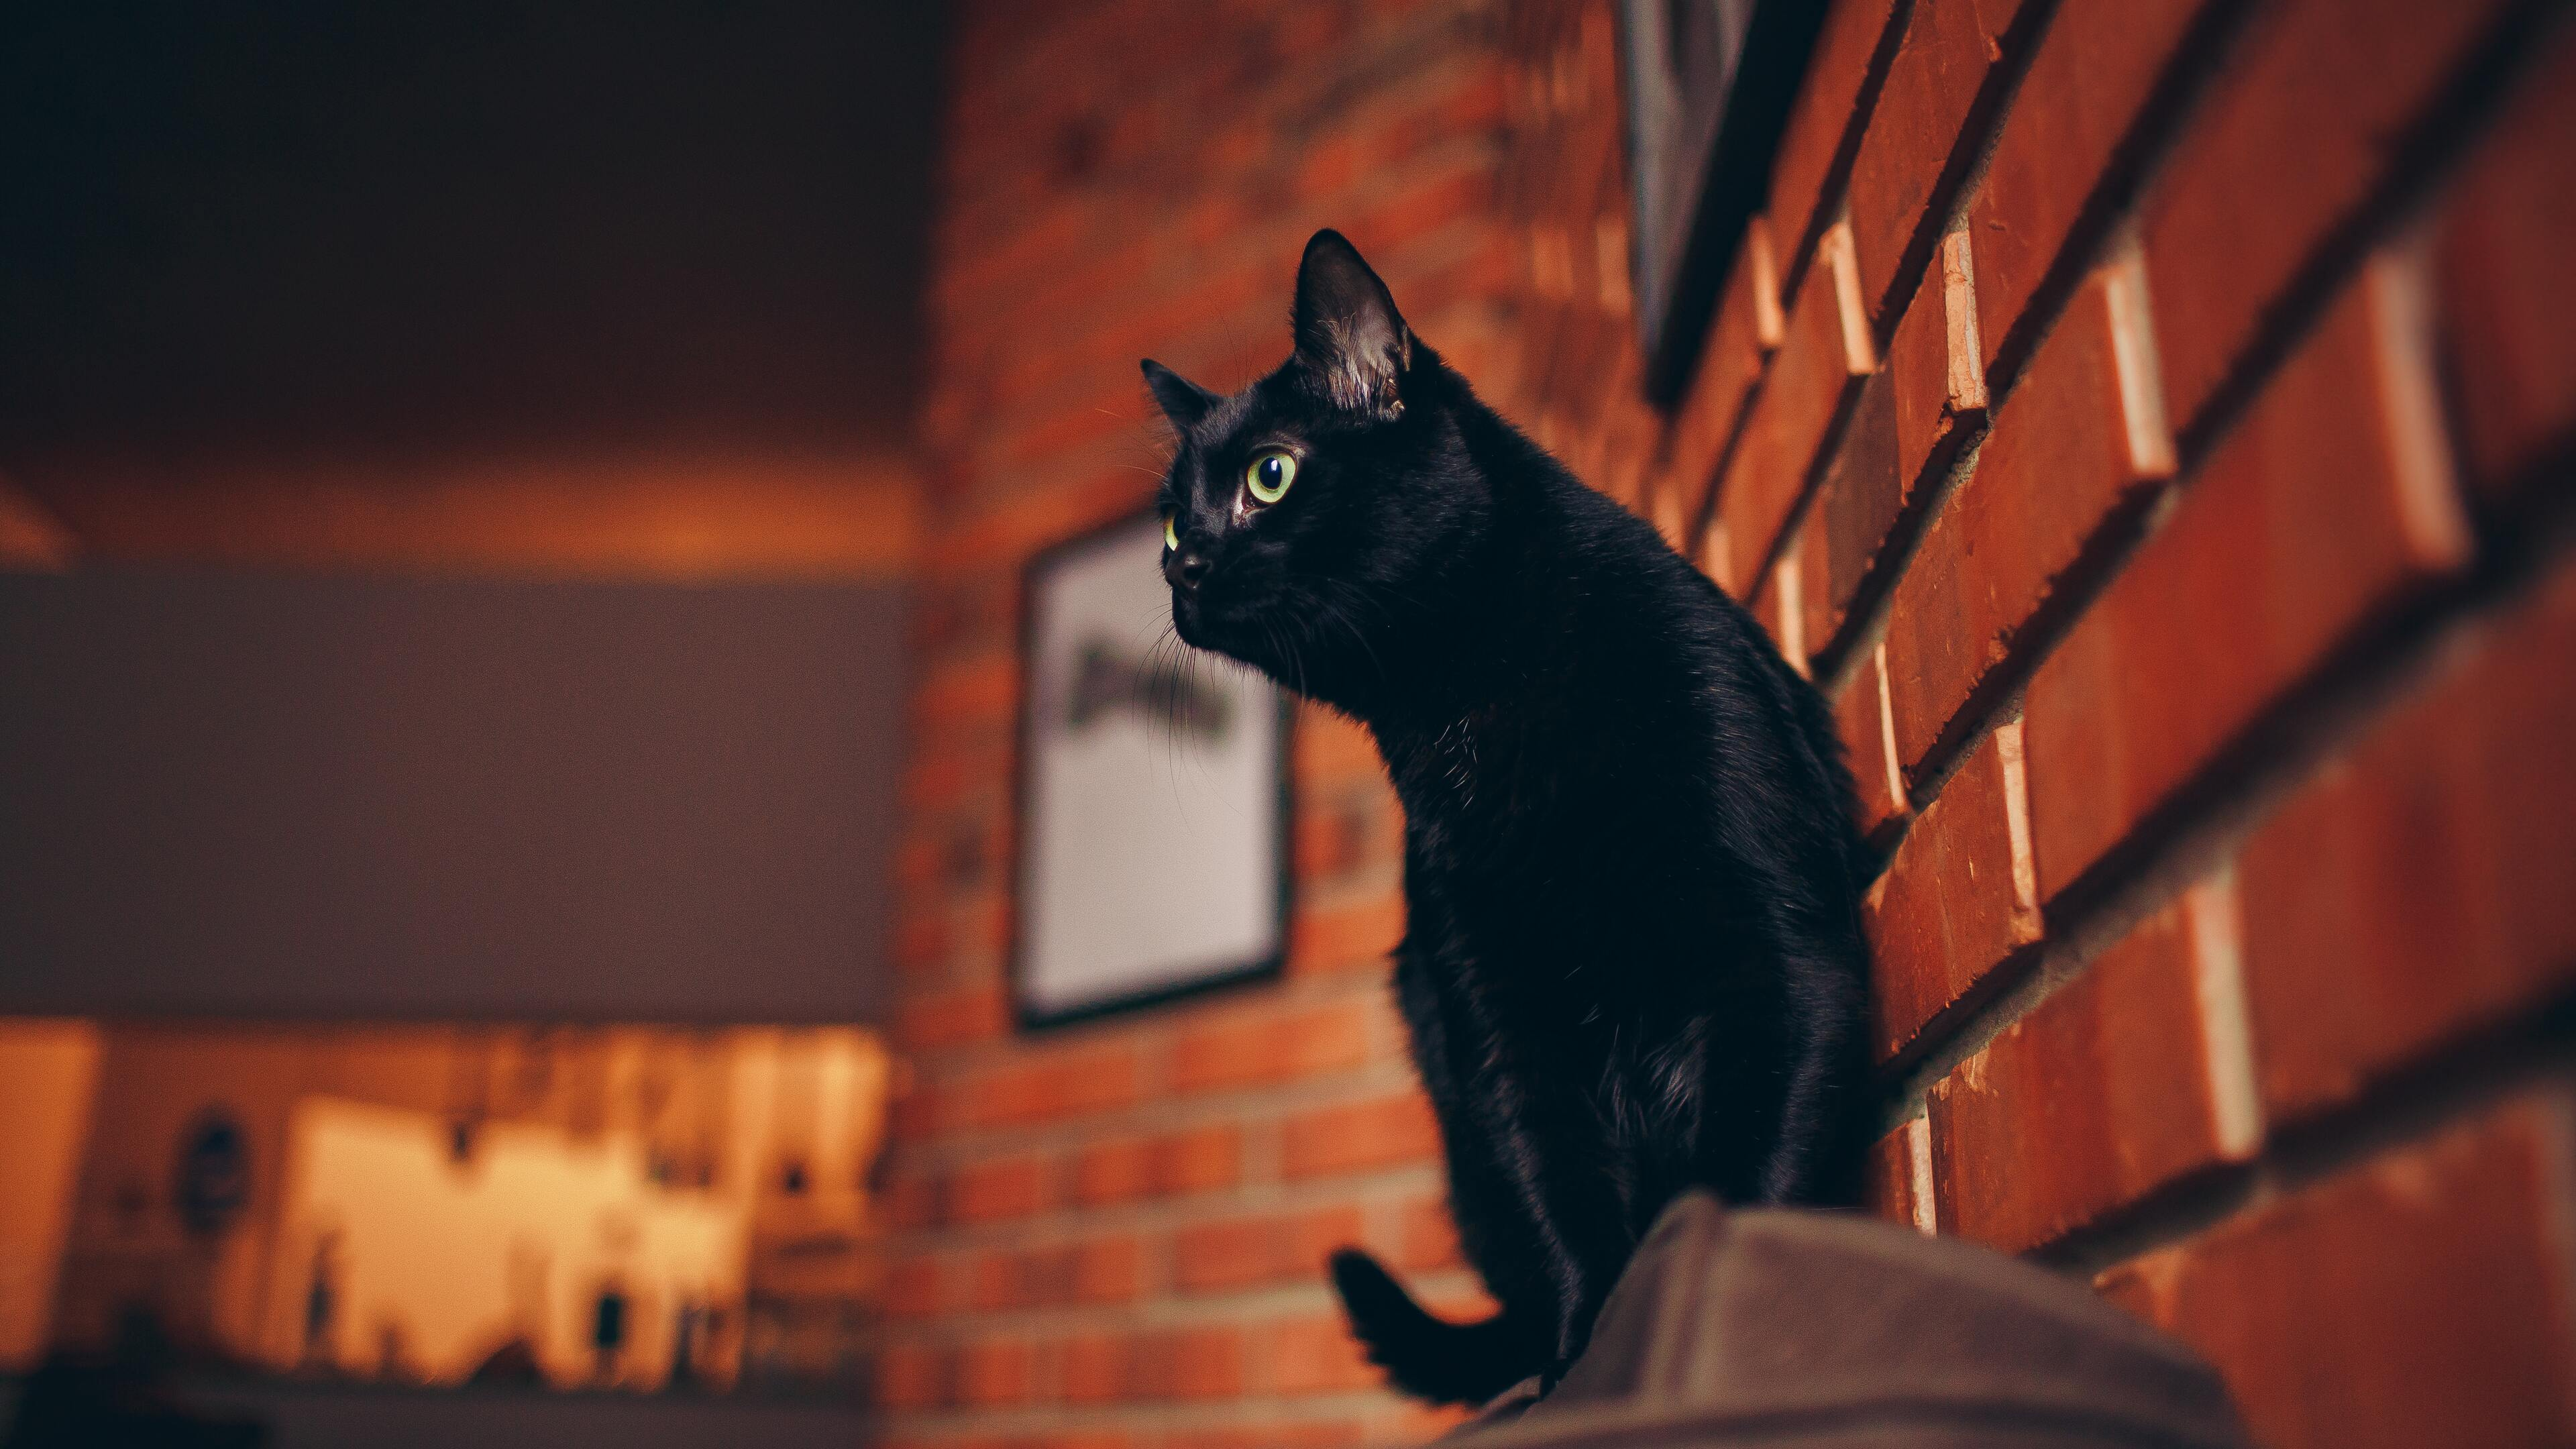 3840x2160 Black Cat Portrait 5k 4k Hd 4k Wallpapers Images Backgrounds Photos And Pictures